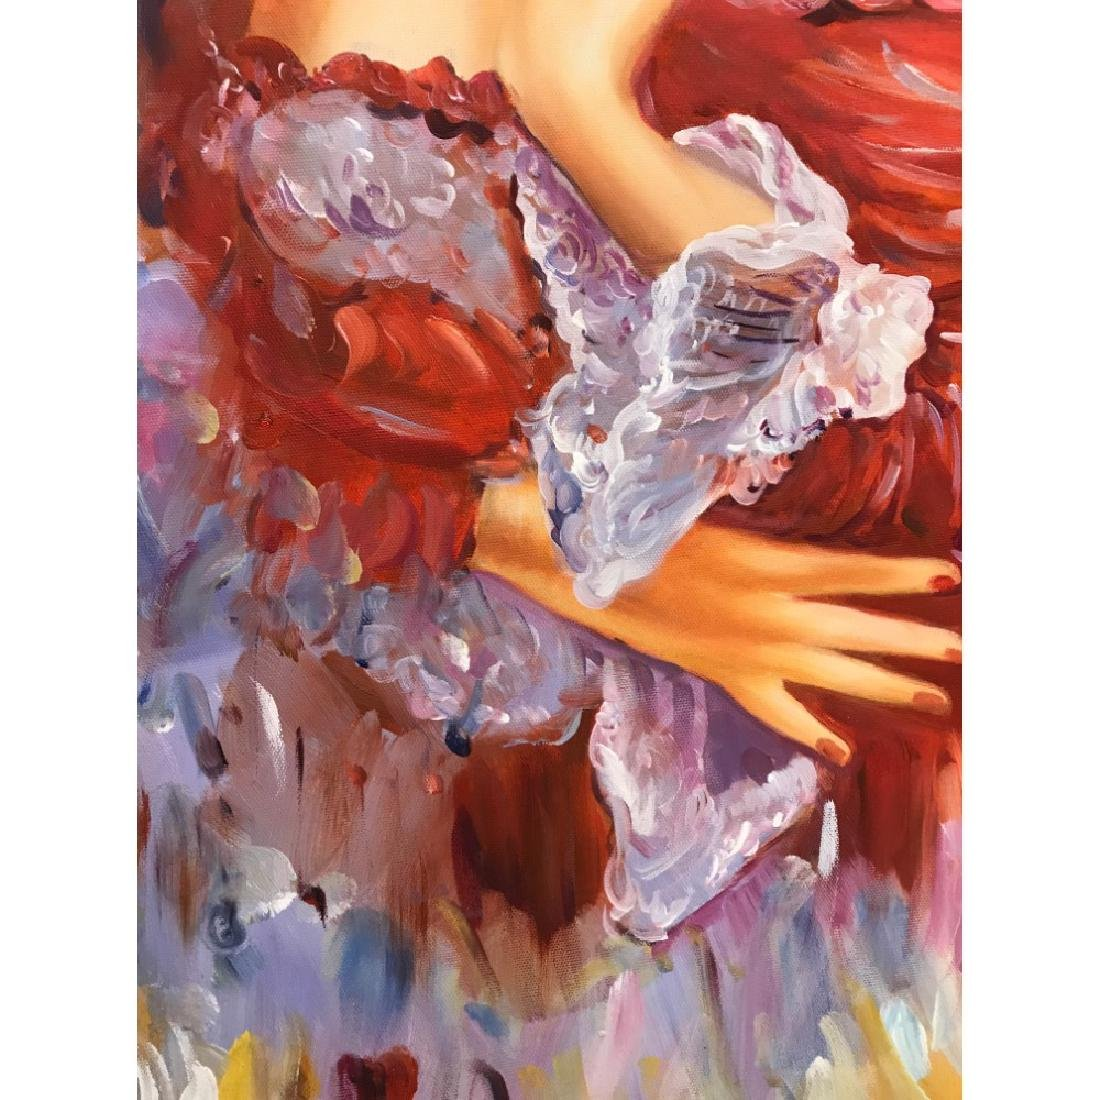 Oil on Canvas of Woman Dreaming in Red - 9